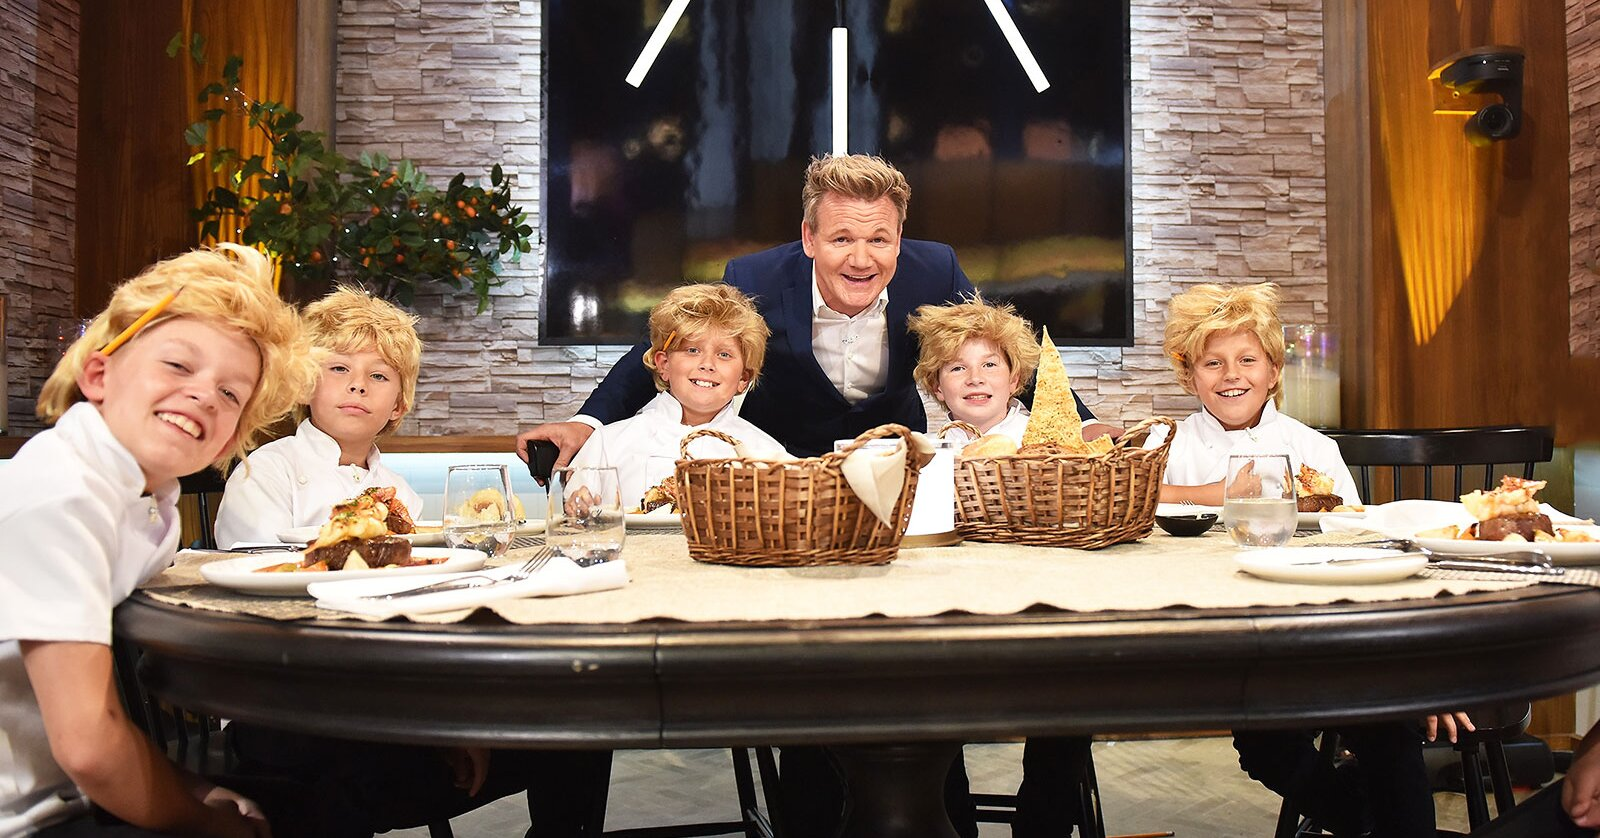 Little Gordon Ramsay is Hilarious